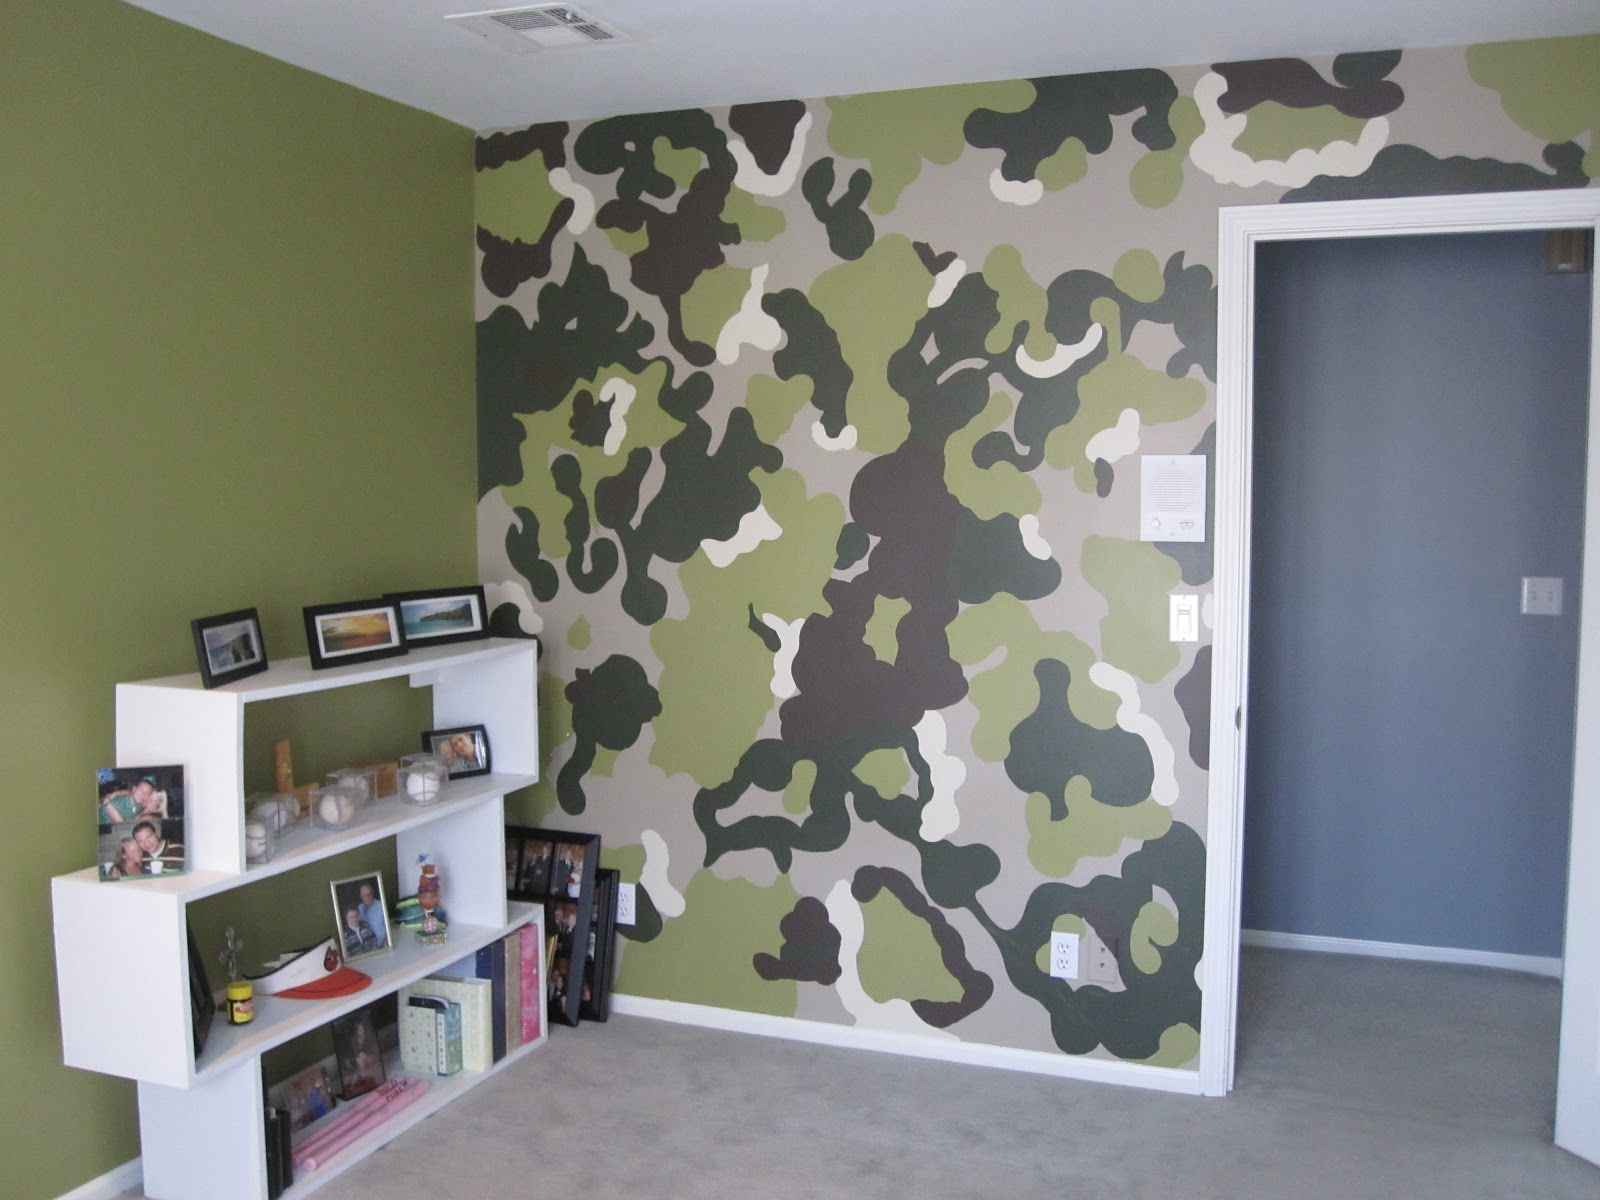 Camo Wall Paint The Colors Didn T Really Go With Rest Of House So We